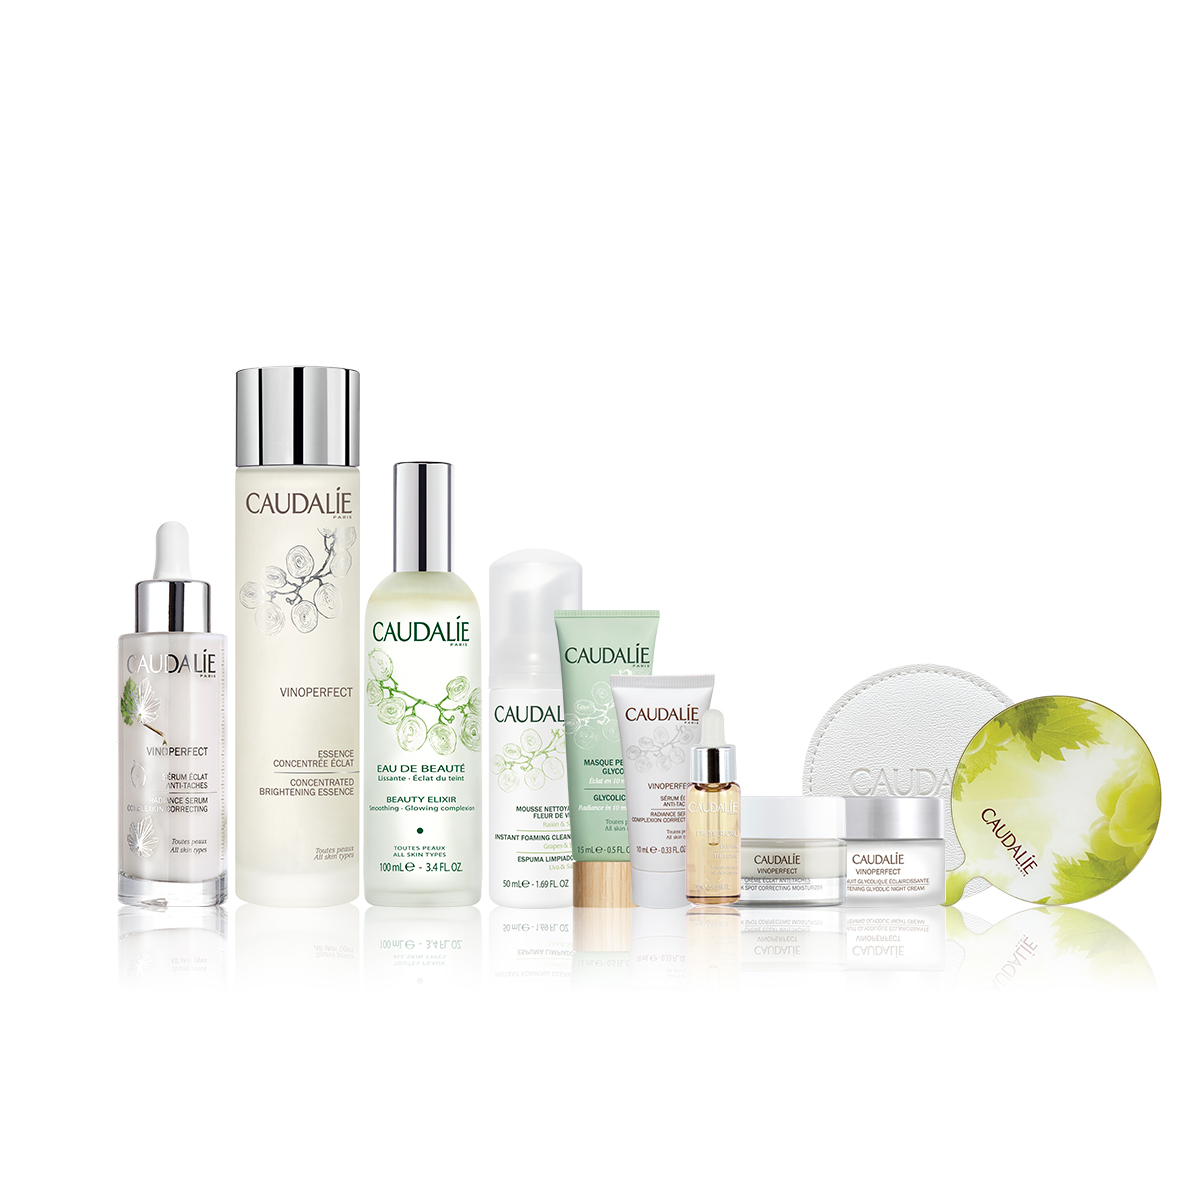 Radiance & Brightening Routine Set